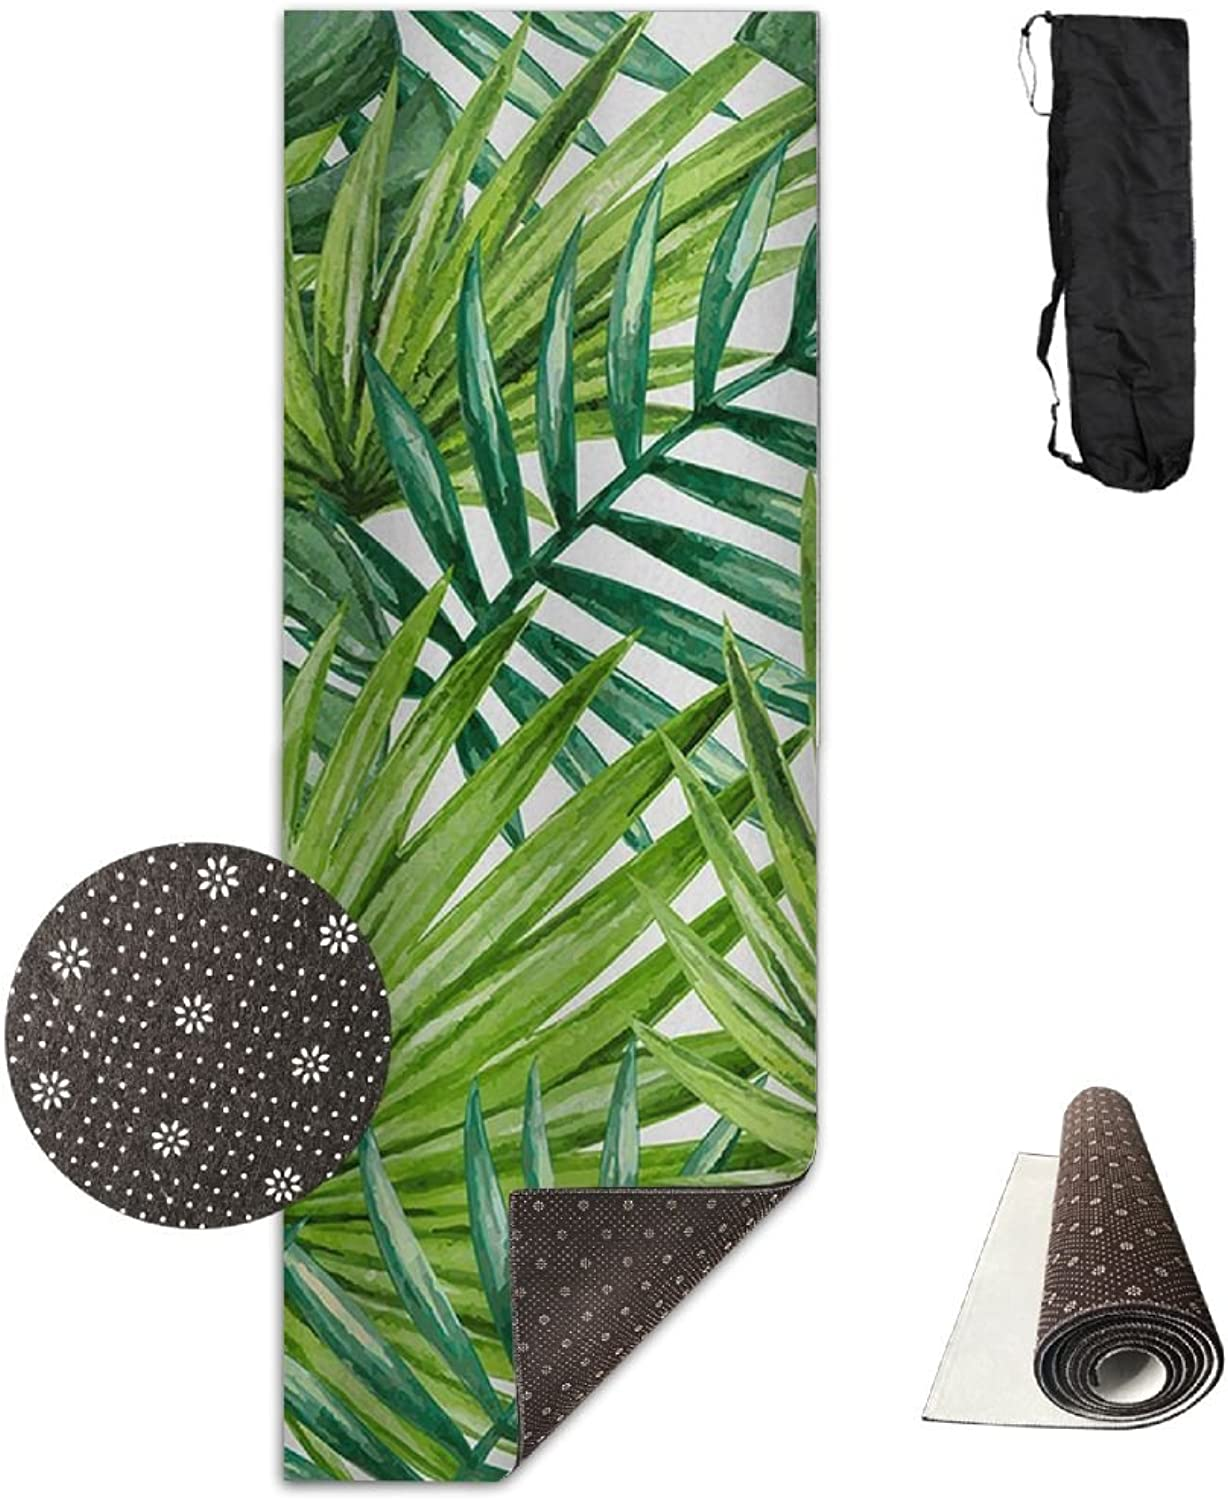 HHHSSS Long 70inch Wide 28inch Non Slip  Tropical Green Palm Leaves Exercise Mat for Yoga, Workout, Fitness with Carrying Strap & Bag